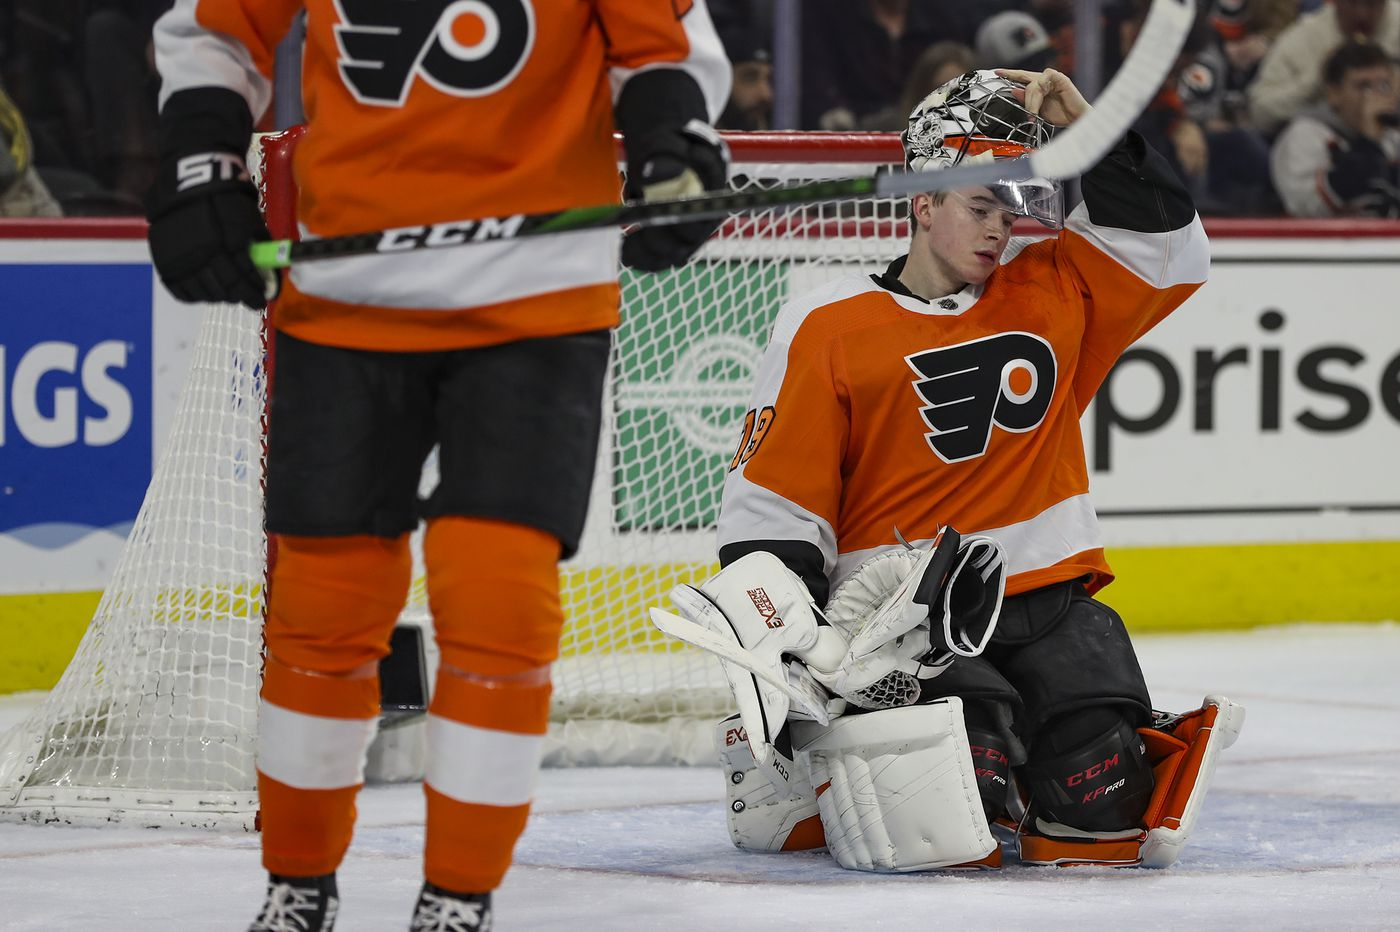 Carter Hart compares favorably to Bernie Parent, Wayne Stephenson in home success